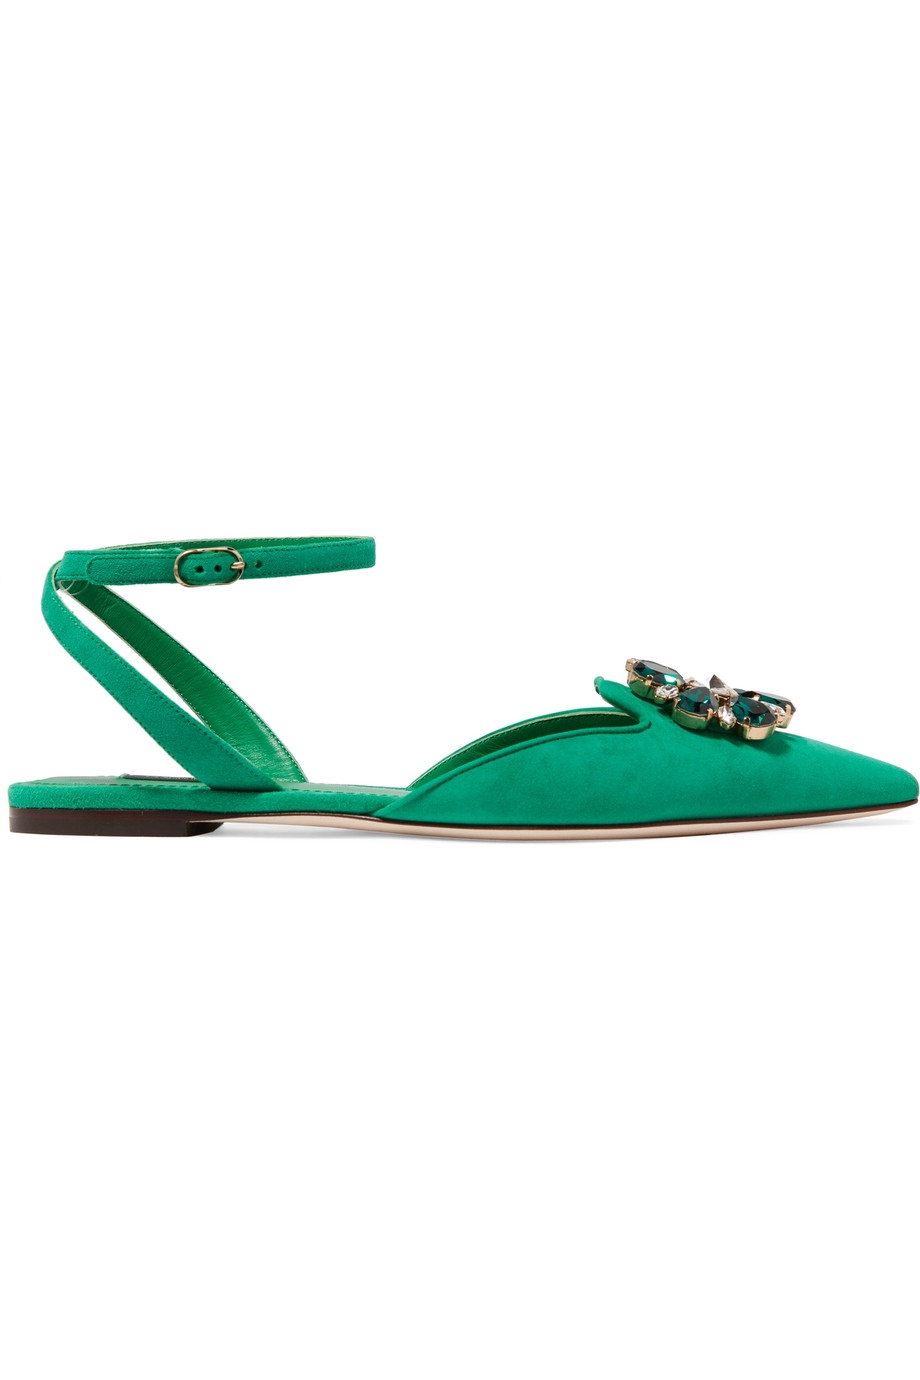 Bellucci crystal-embellished suede point-toe flats, Dolce & Gabbana